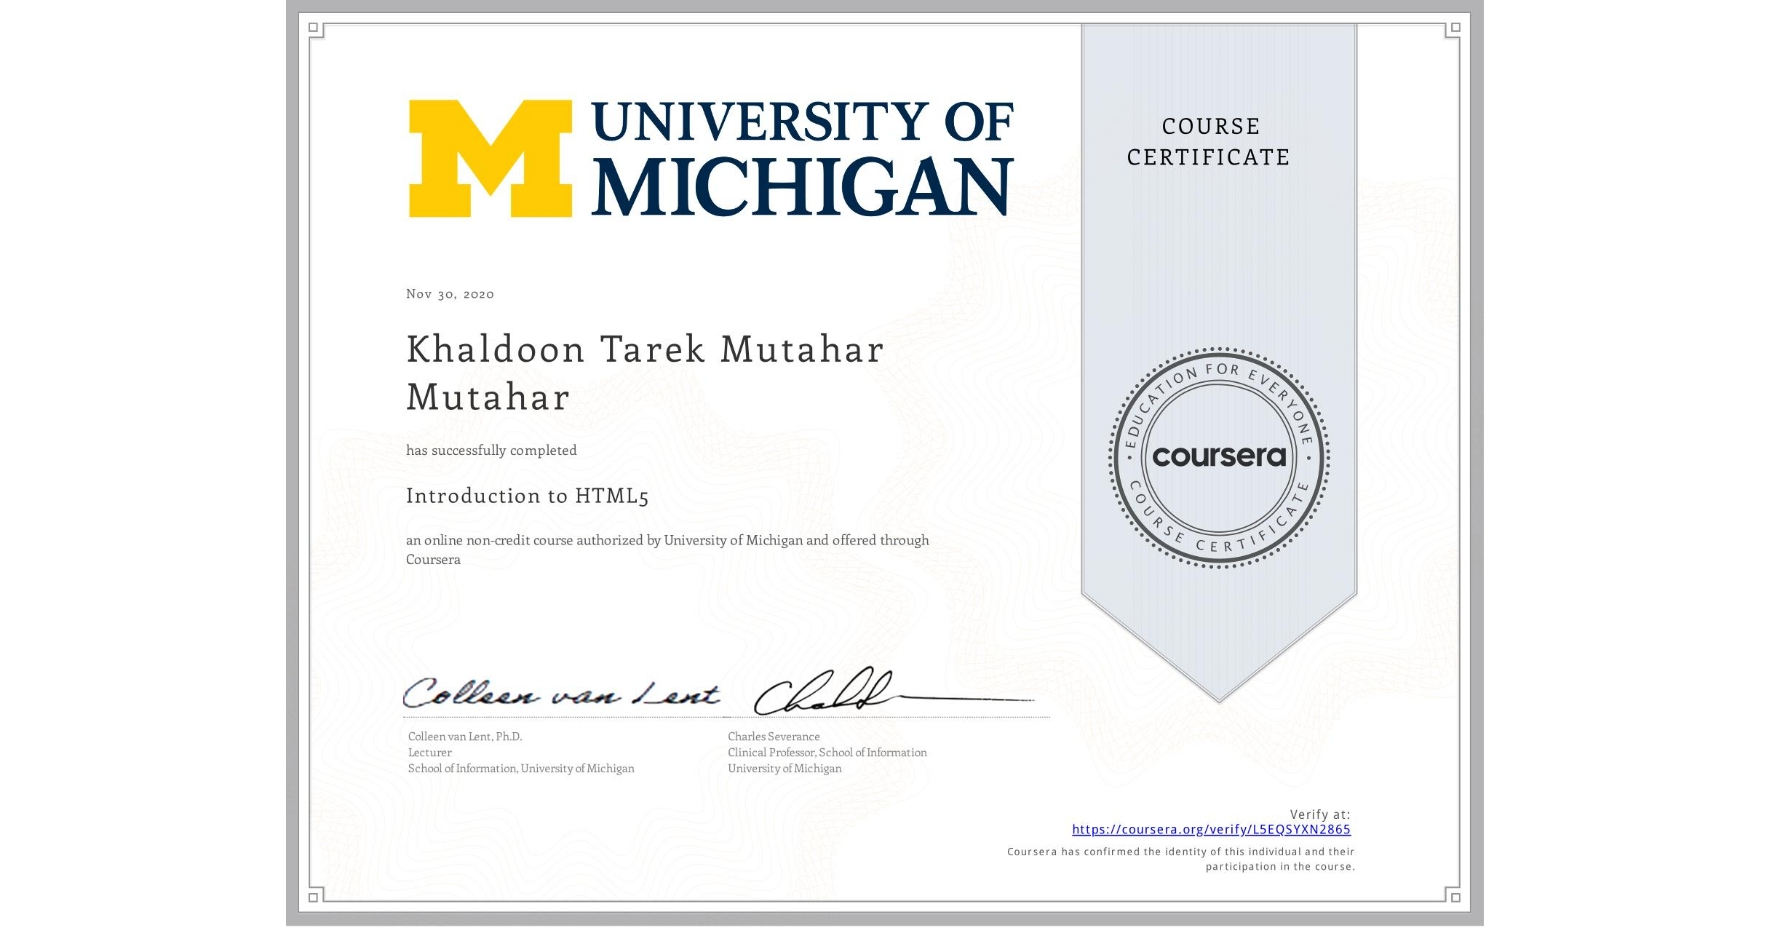 View certificate for KHALDOON TAREK MUTAHAR  MUTAHAR, Introduction to HTML5, an online non-credit course authorized by University of Michigan and offered through Coursera